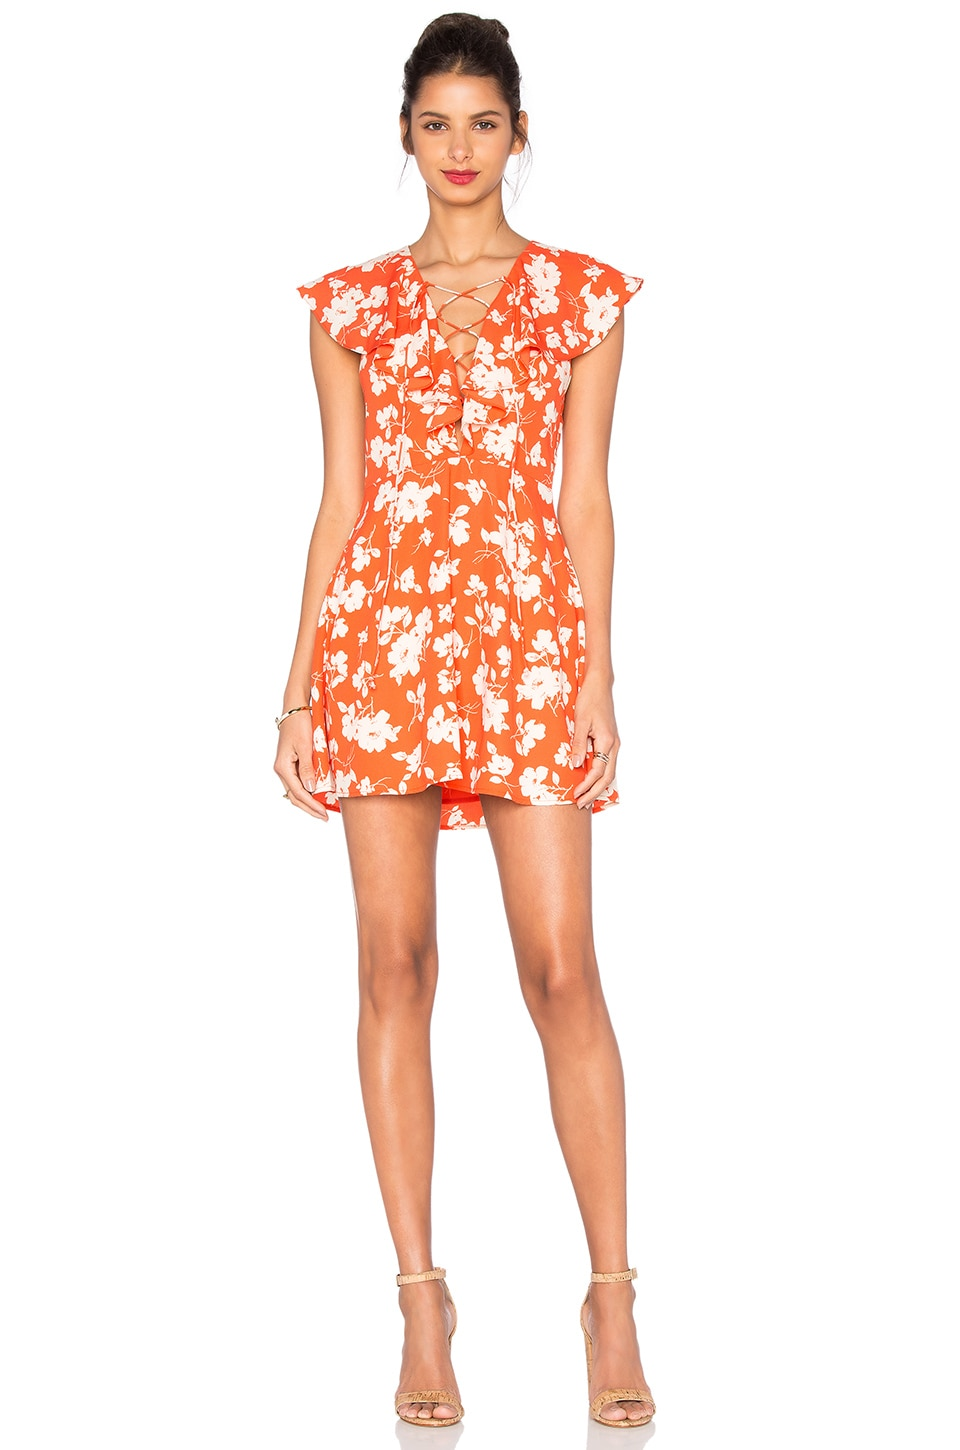 Sleeveless Lace Up Floral Dress by J.O.A.